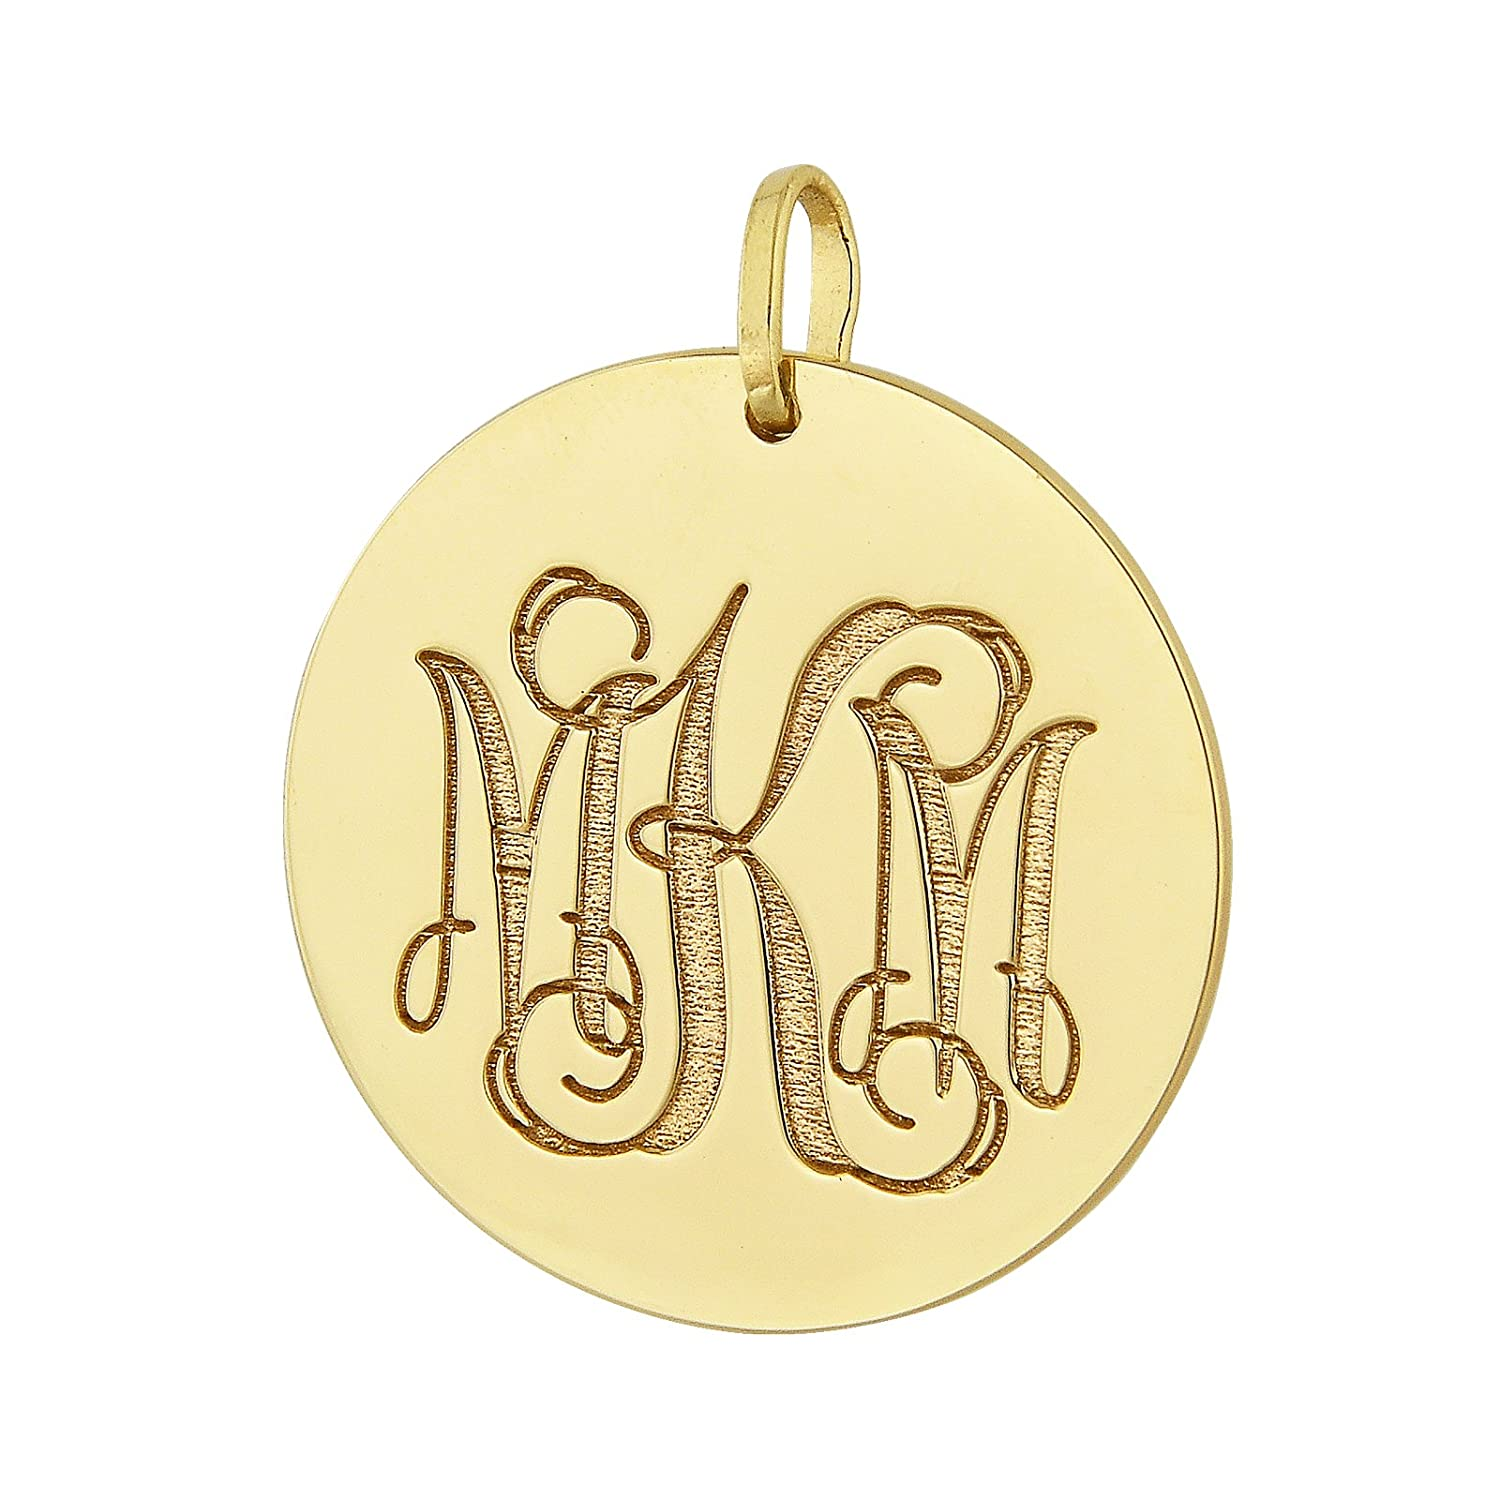 f989c26aff475a Amazon.com: Soul Jewelry 14K Solid White Gold 1 Inch isc 3 Initial Circle  Monogram Charm Pendant Necklace Deep Laser Engraved GC09 (White-Gold):  Jewelry